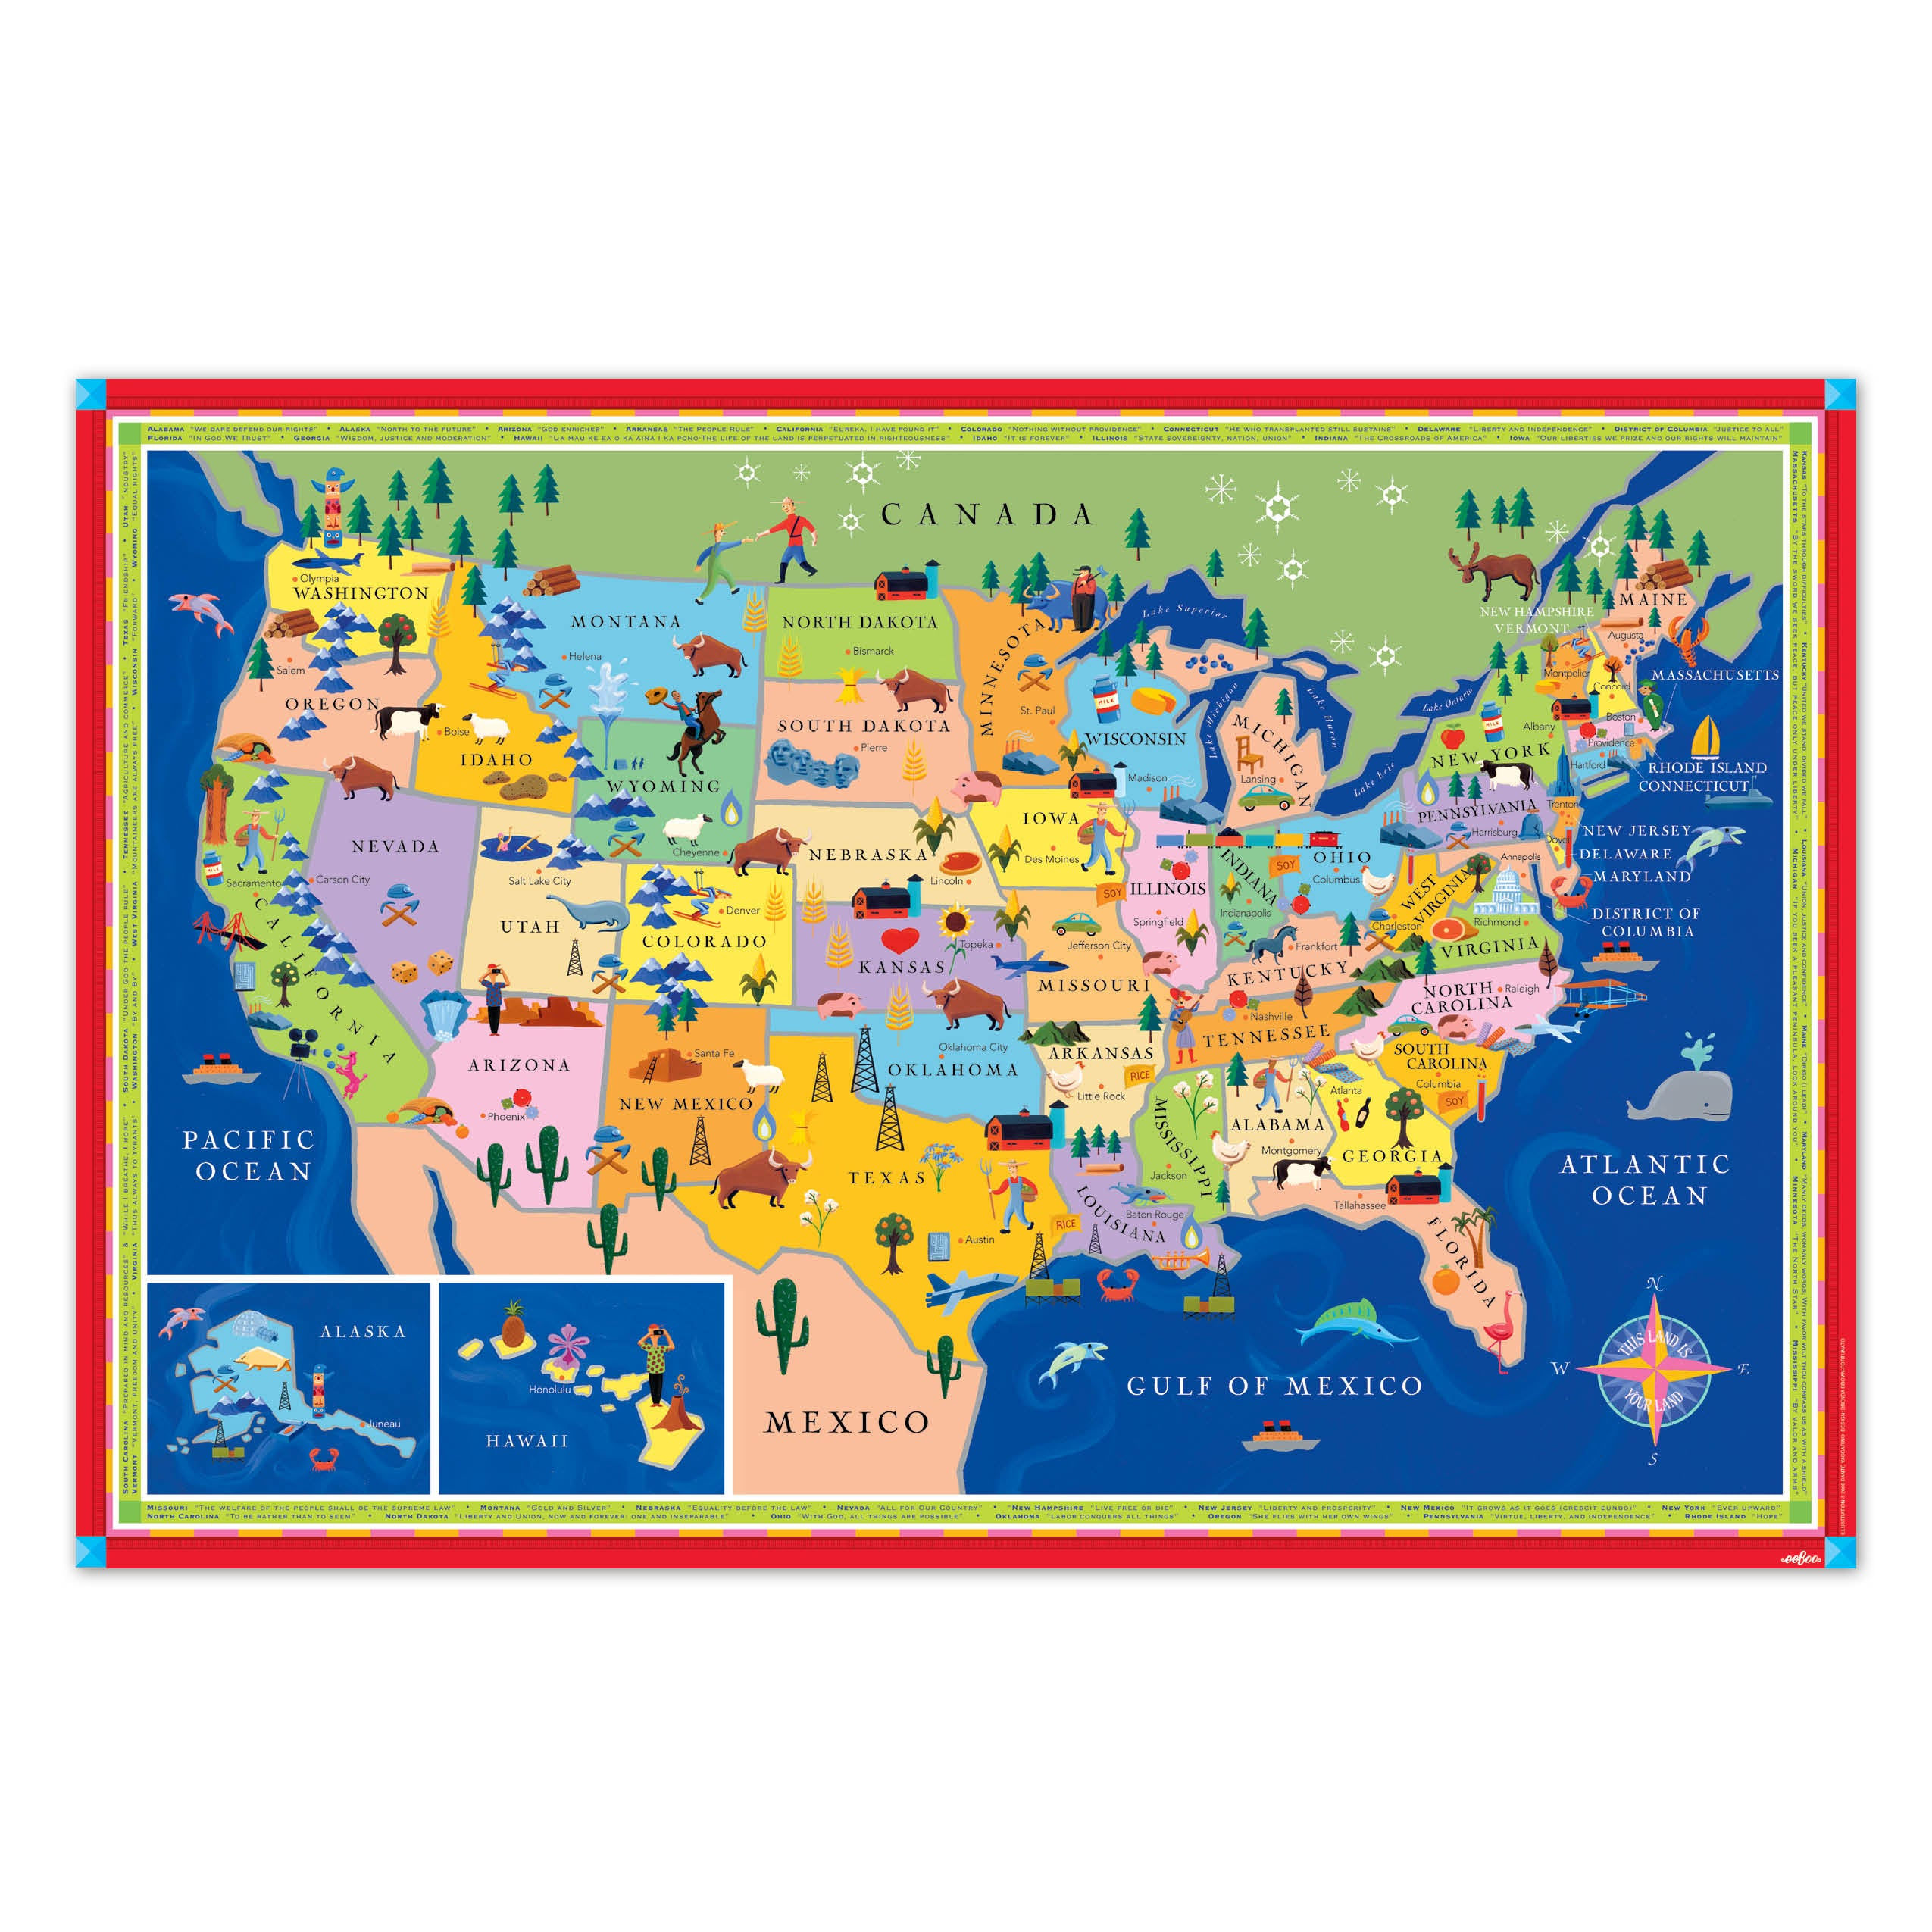 Map Of The United States Map Of The United States.This Land Is Your Land United States Map Eeboo